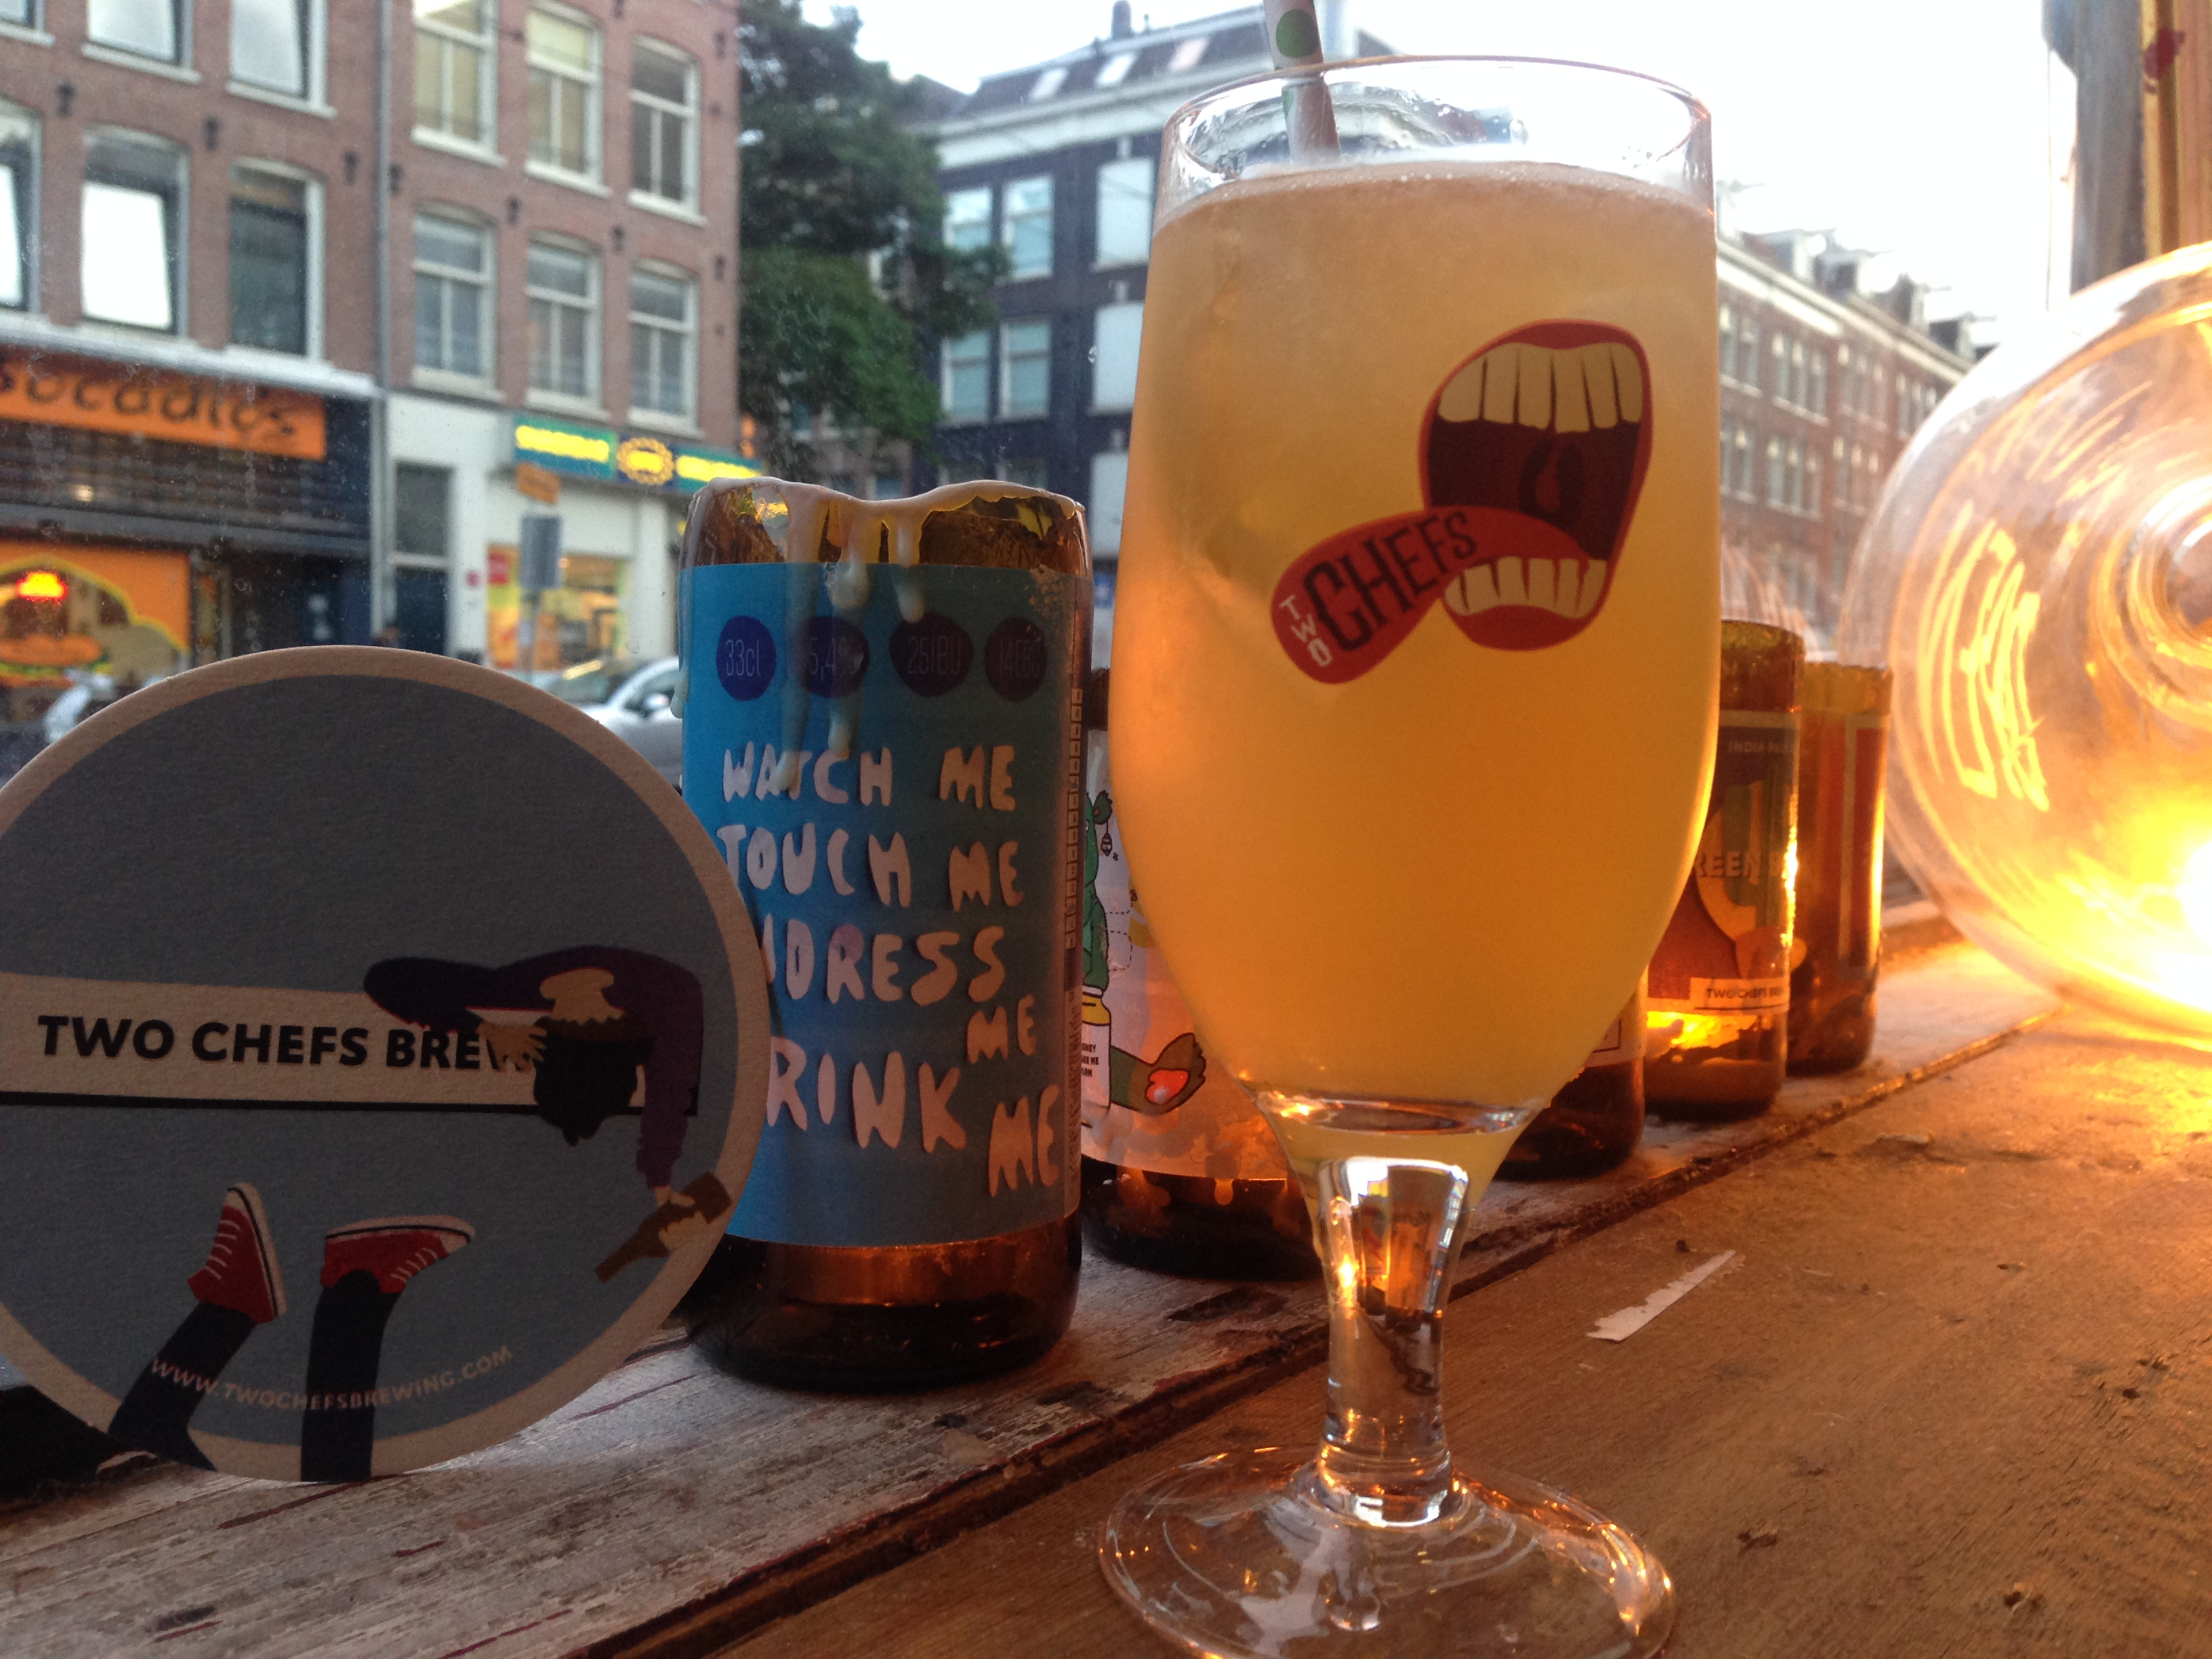 Thirsty for craft beer in Amsterdam? Here are 10 of our favorite local Amsterdam microbreweries! Two Chefs Brewing awesomeamsterdam.com